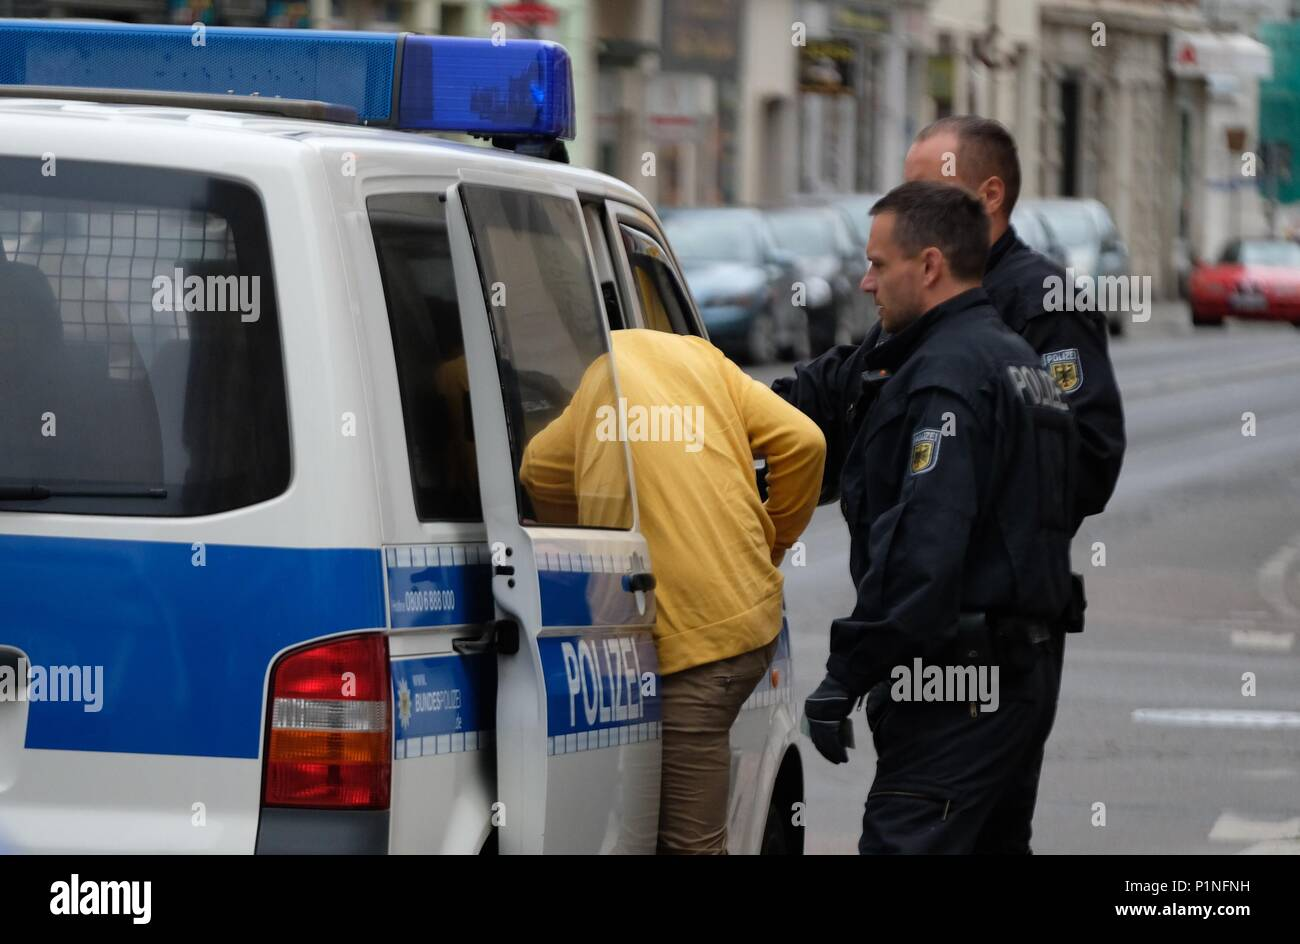 13 June 2018, Leipzig, Germany: Officers of the federal police accompany a man to a police vehicle. A police deployment took place due to  sham marriage suspicions. Photo: Sebastian Willnow/dpa-Zentralbild/dpa - Stock Image